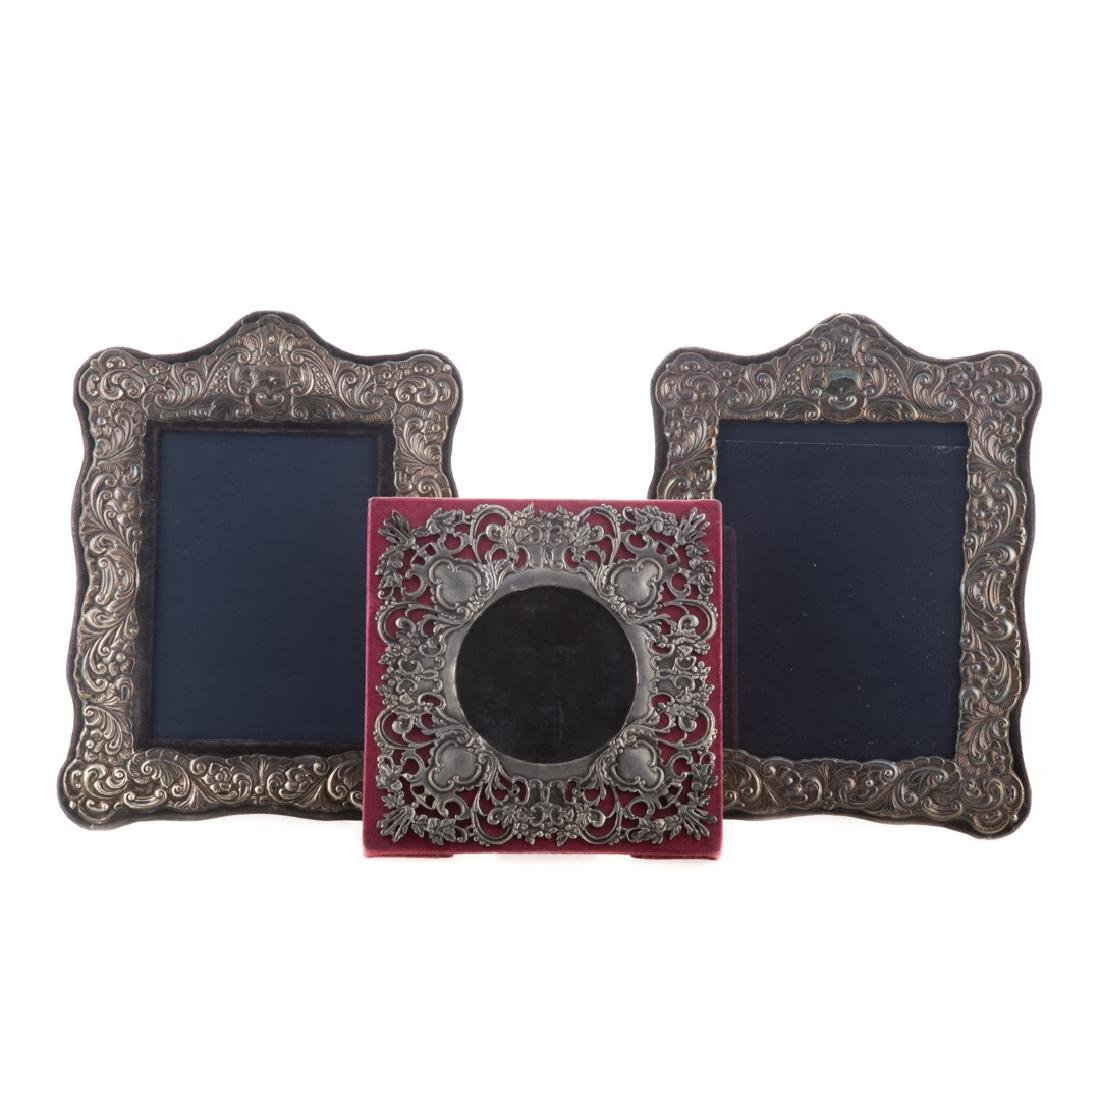 Pair of repousse sterling 5 x 7 picture frames